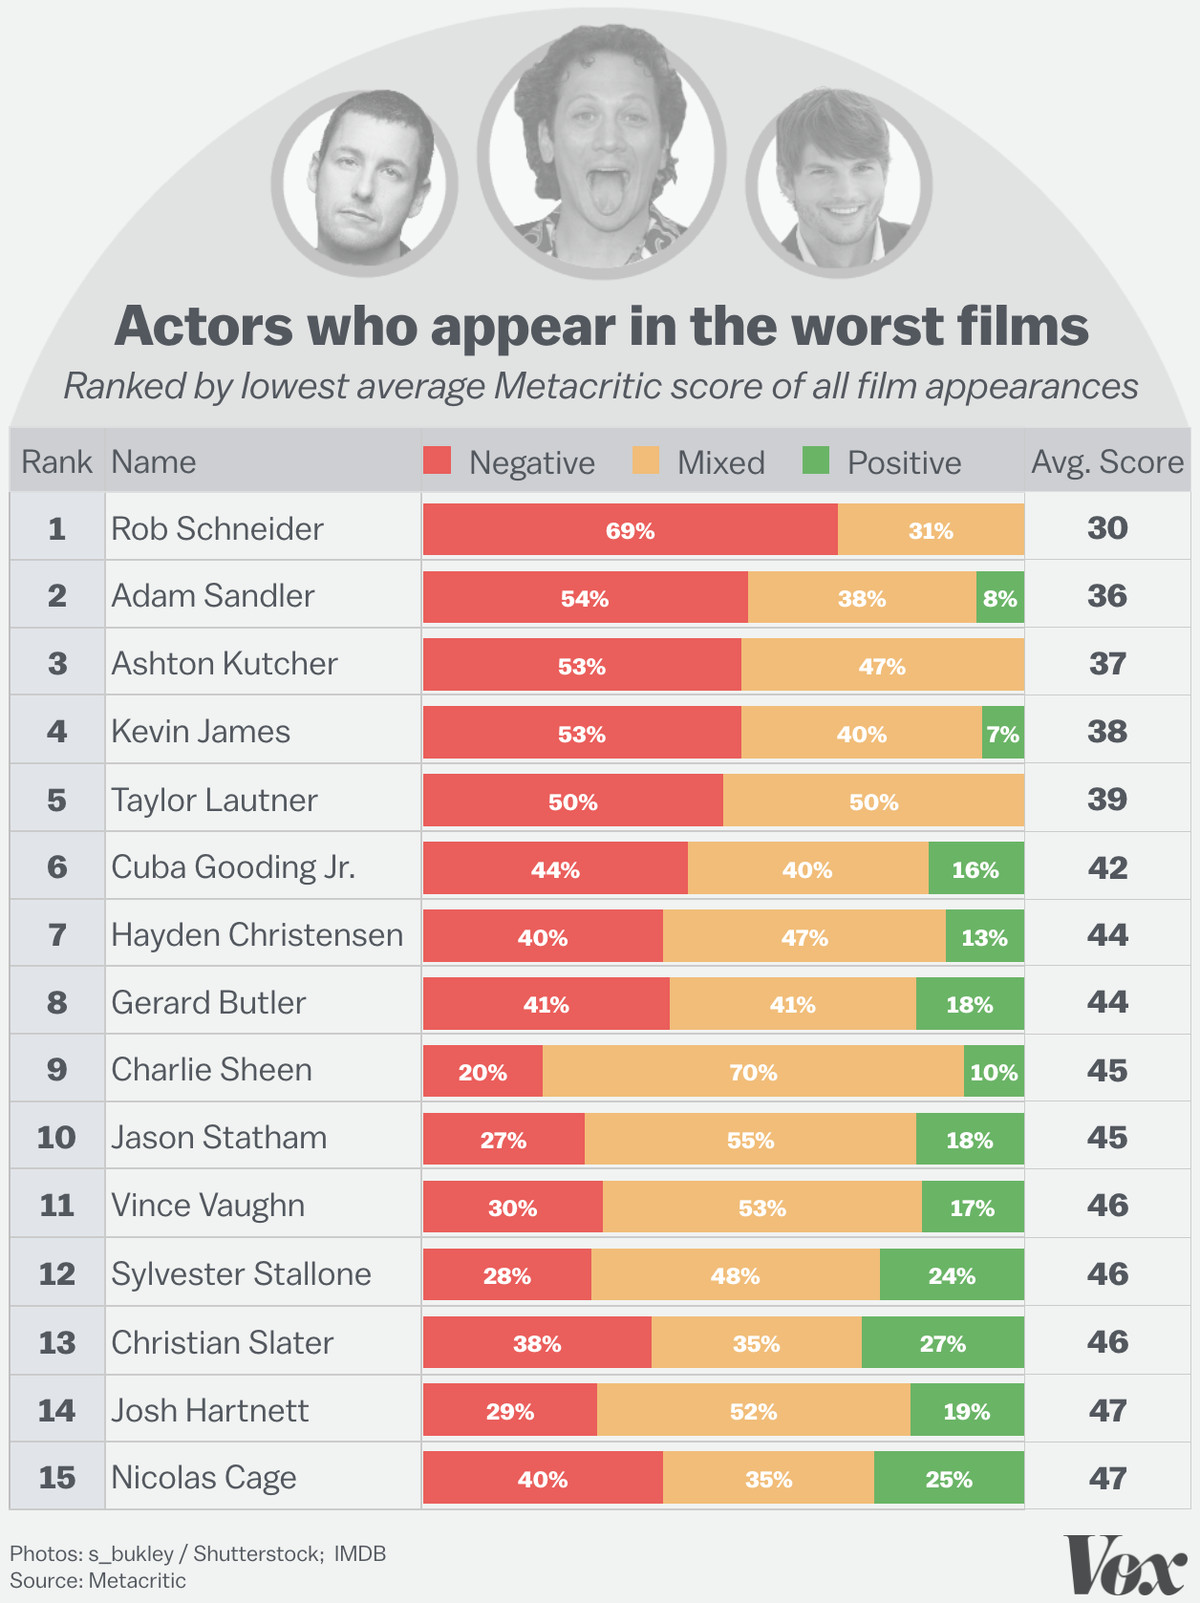 The actors and actresses who most consistently appear in